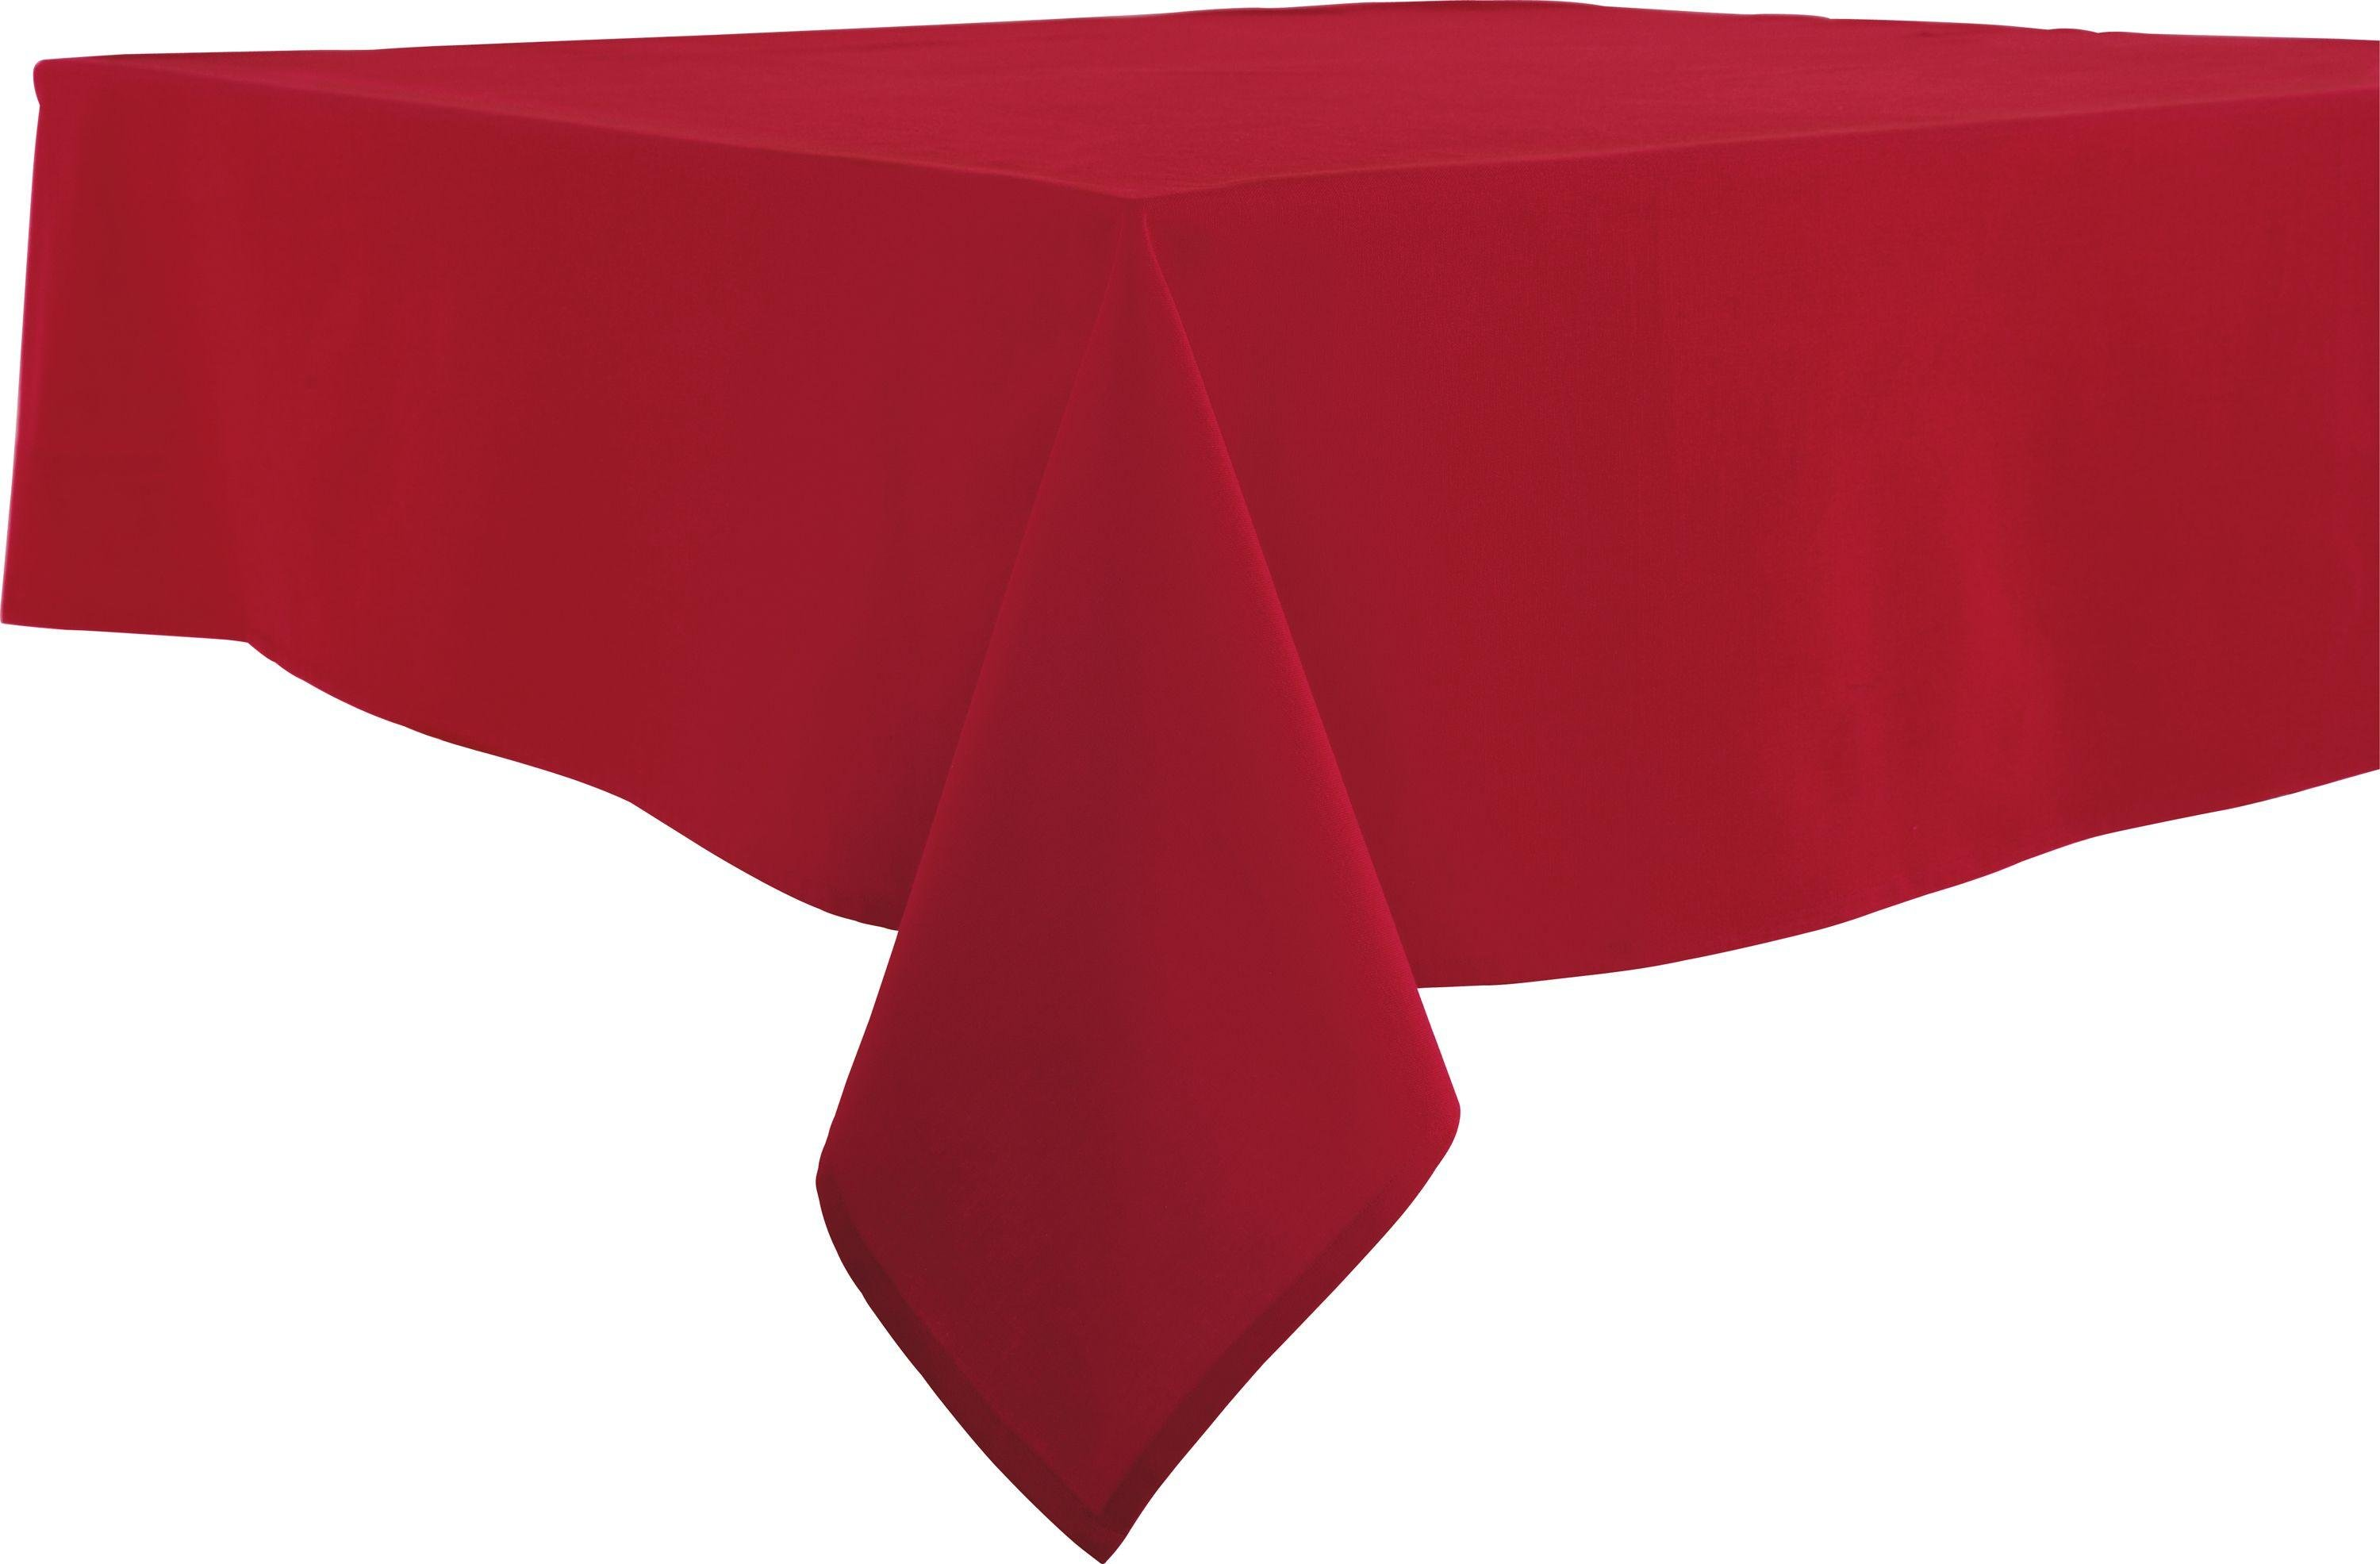 HOME Red Table Cloth